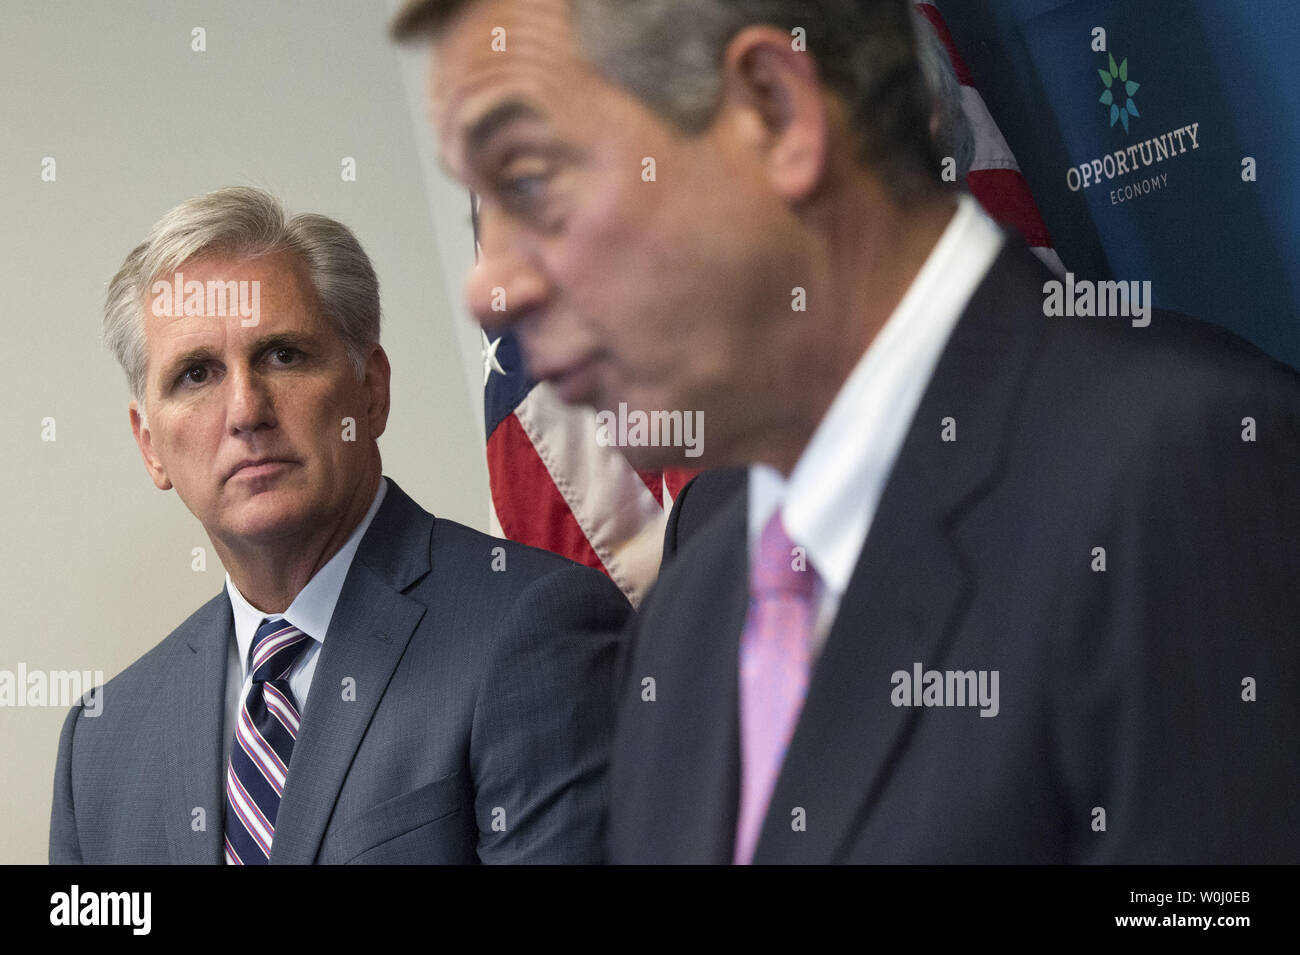 House Majority Leader Kevin McCarthy (R-SD) (L) watches as Speaker of the House John Boehner (R-OH) speaks during a weekly press conference on Capitol Hill in Washington, D.C. on September 29, 2015. Photo by Kevin Dietsch/UPI - Stock Image